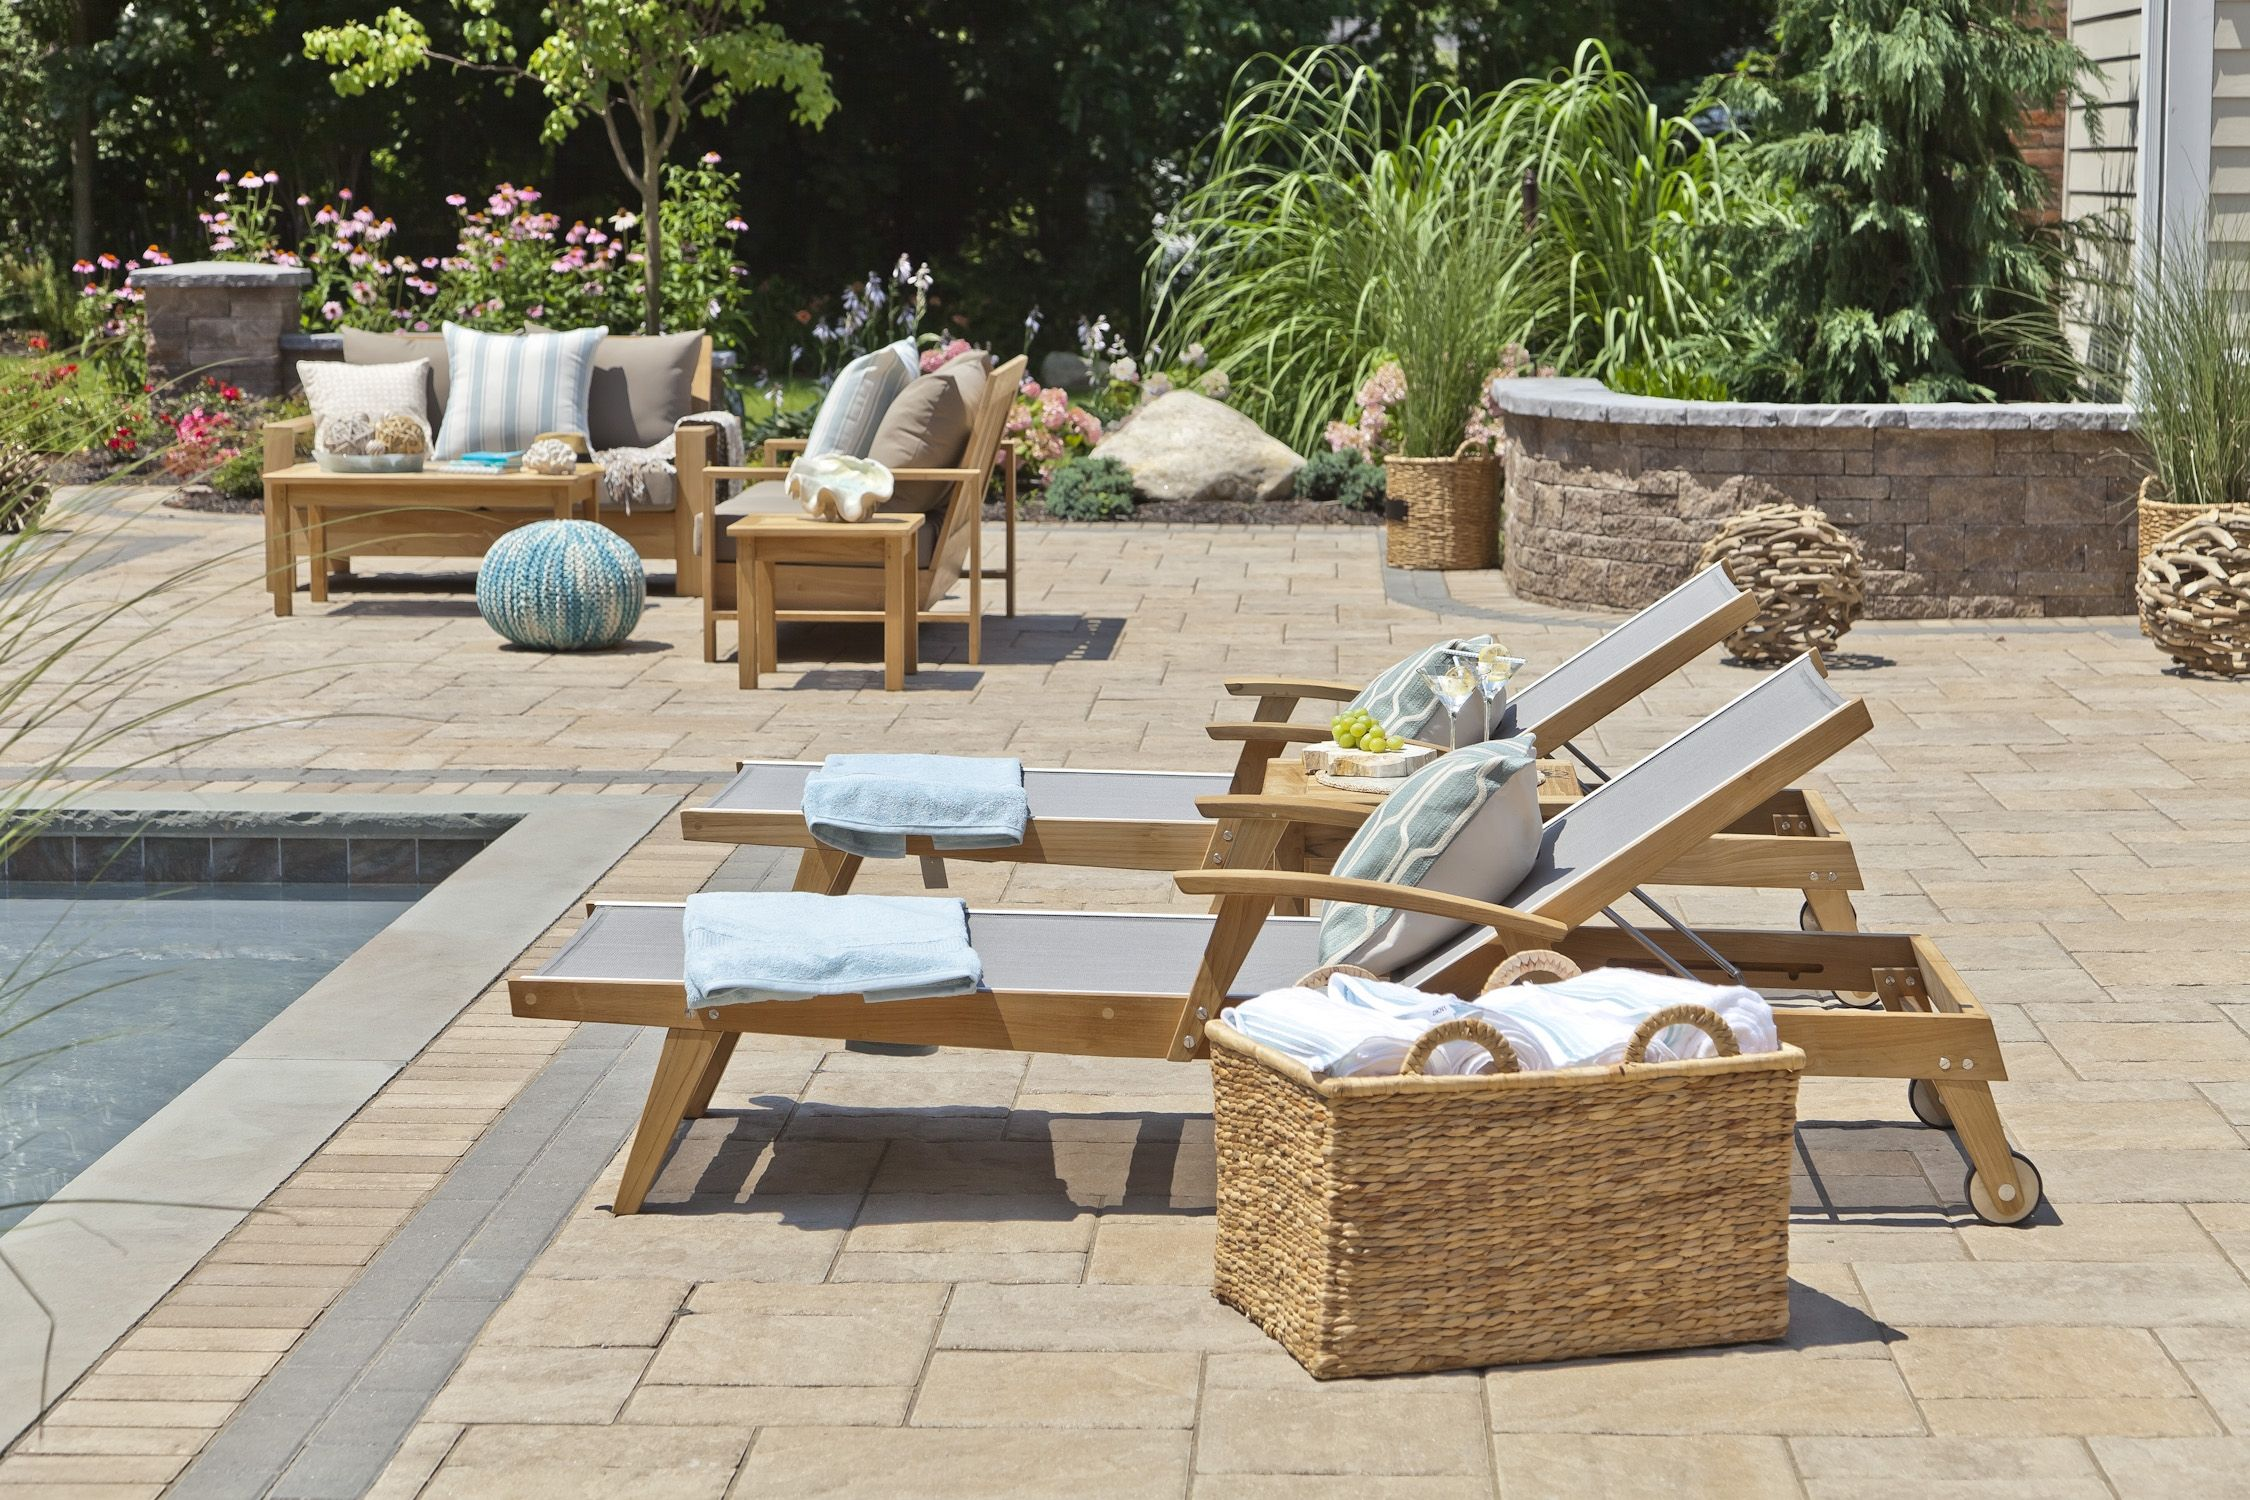 Sling chaise lounge | Patio rocking chairs, Fire pit ... on Living Accents Sling Folding Chaise id=94092